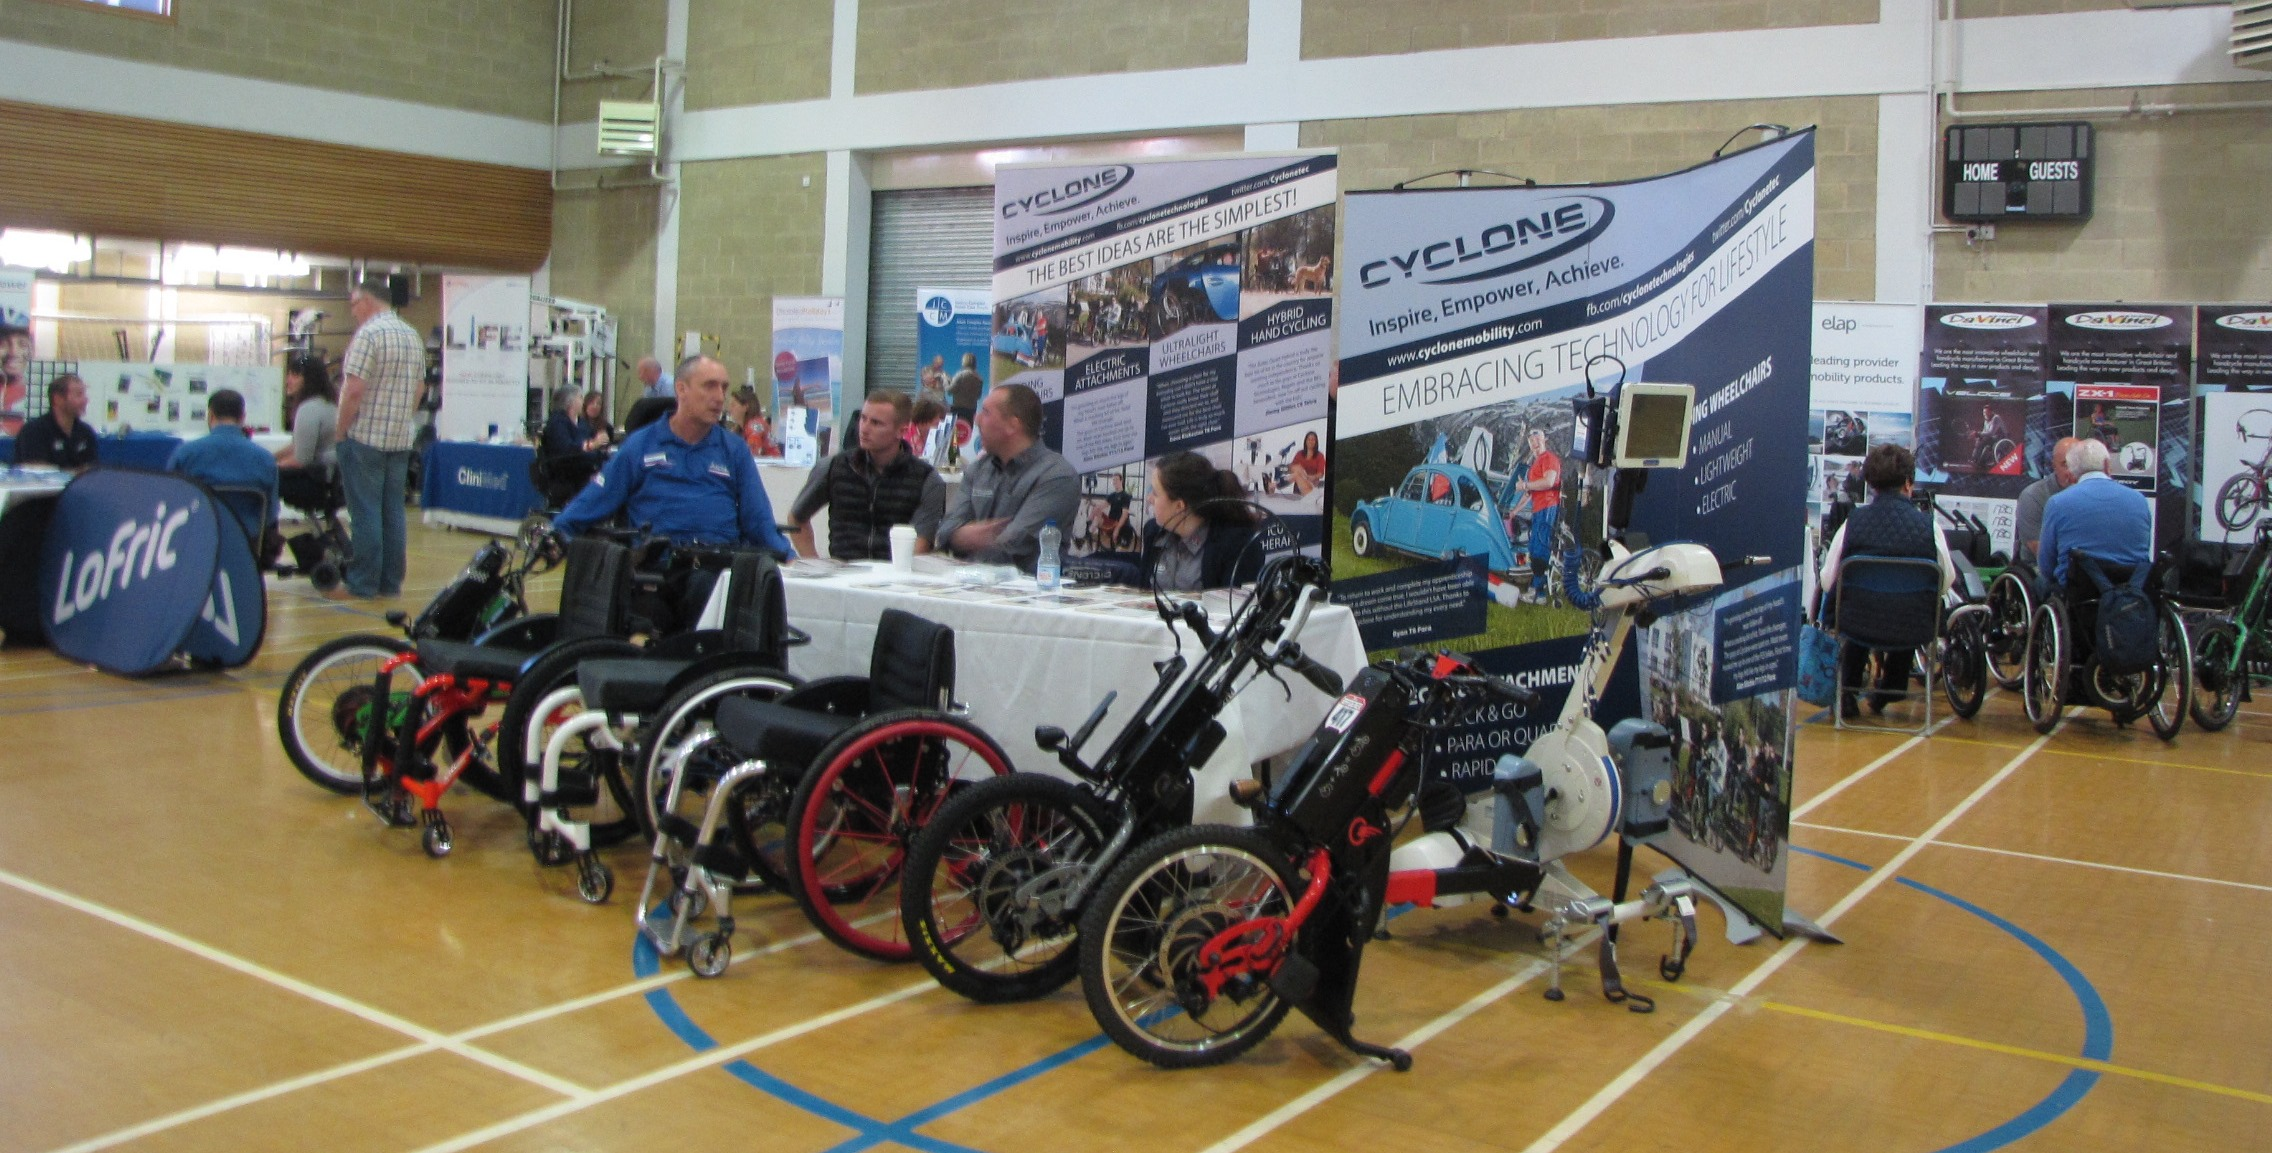 Visitors & exhibitors at the Spinal Day